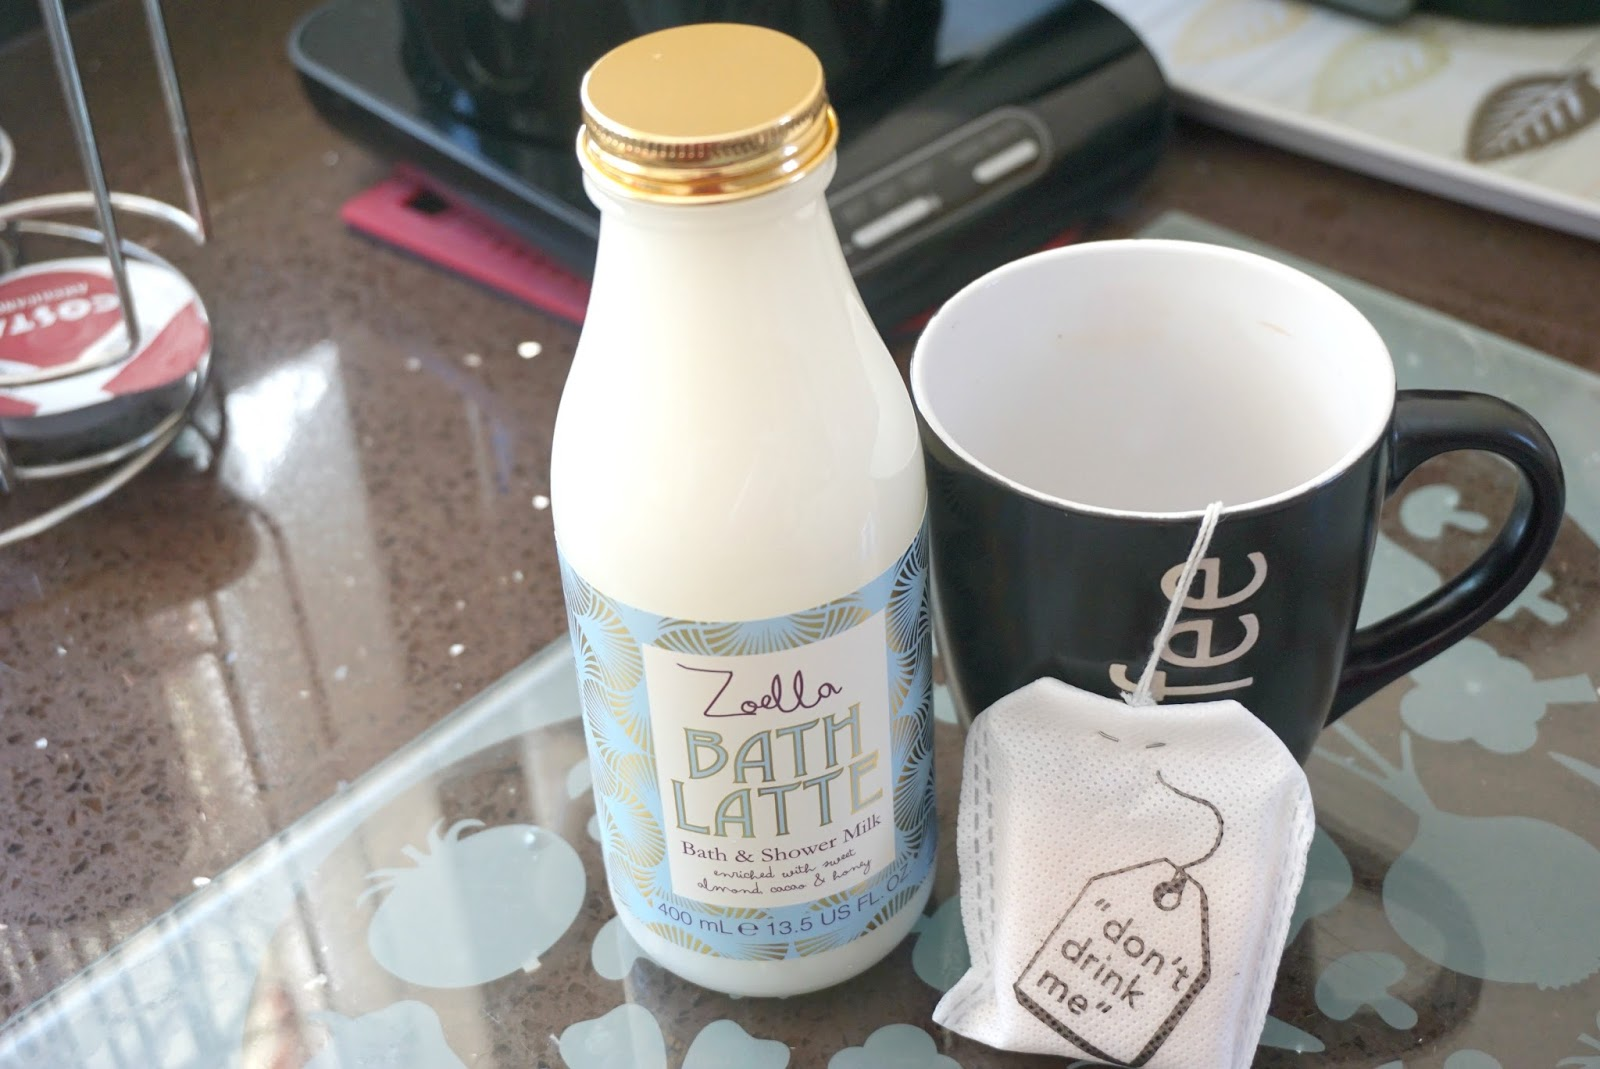 Zoella bath Latte Bubble t t-bags